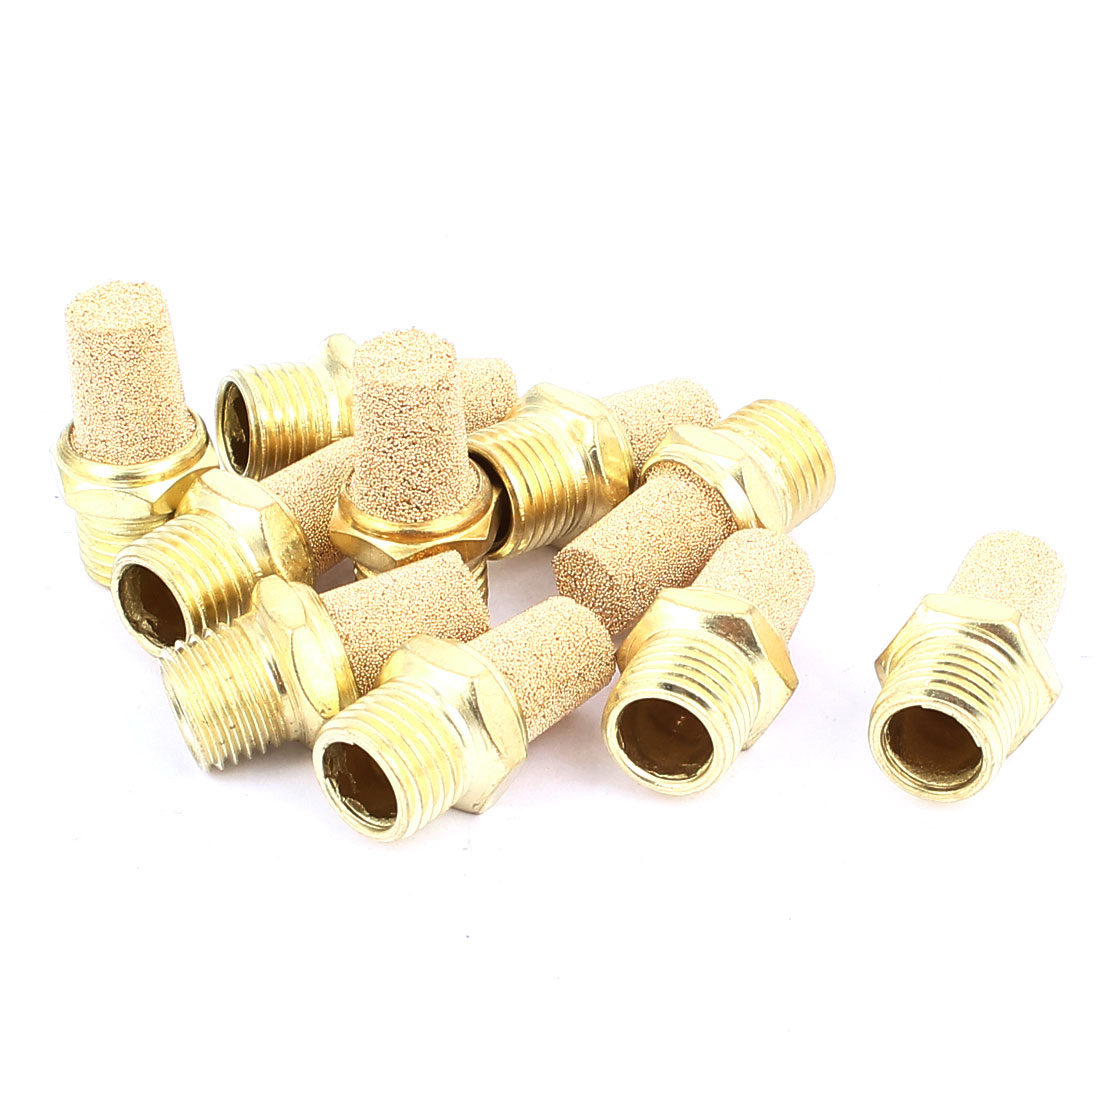 1/4PT Male Thread Noise Reducing Pneumatic Muffler Silencer Filter Exhaust Brass 10 Pcs